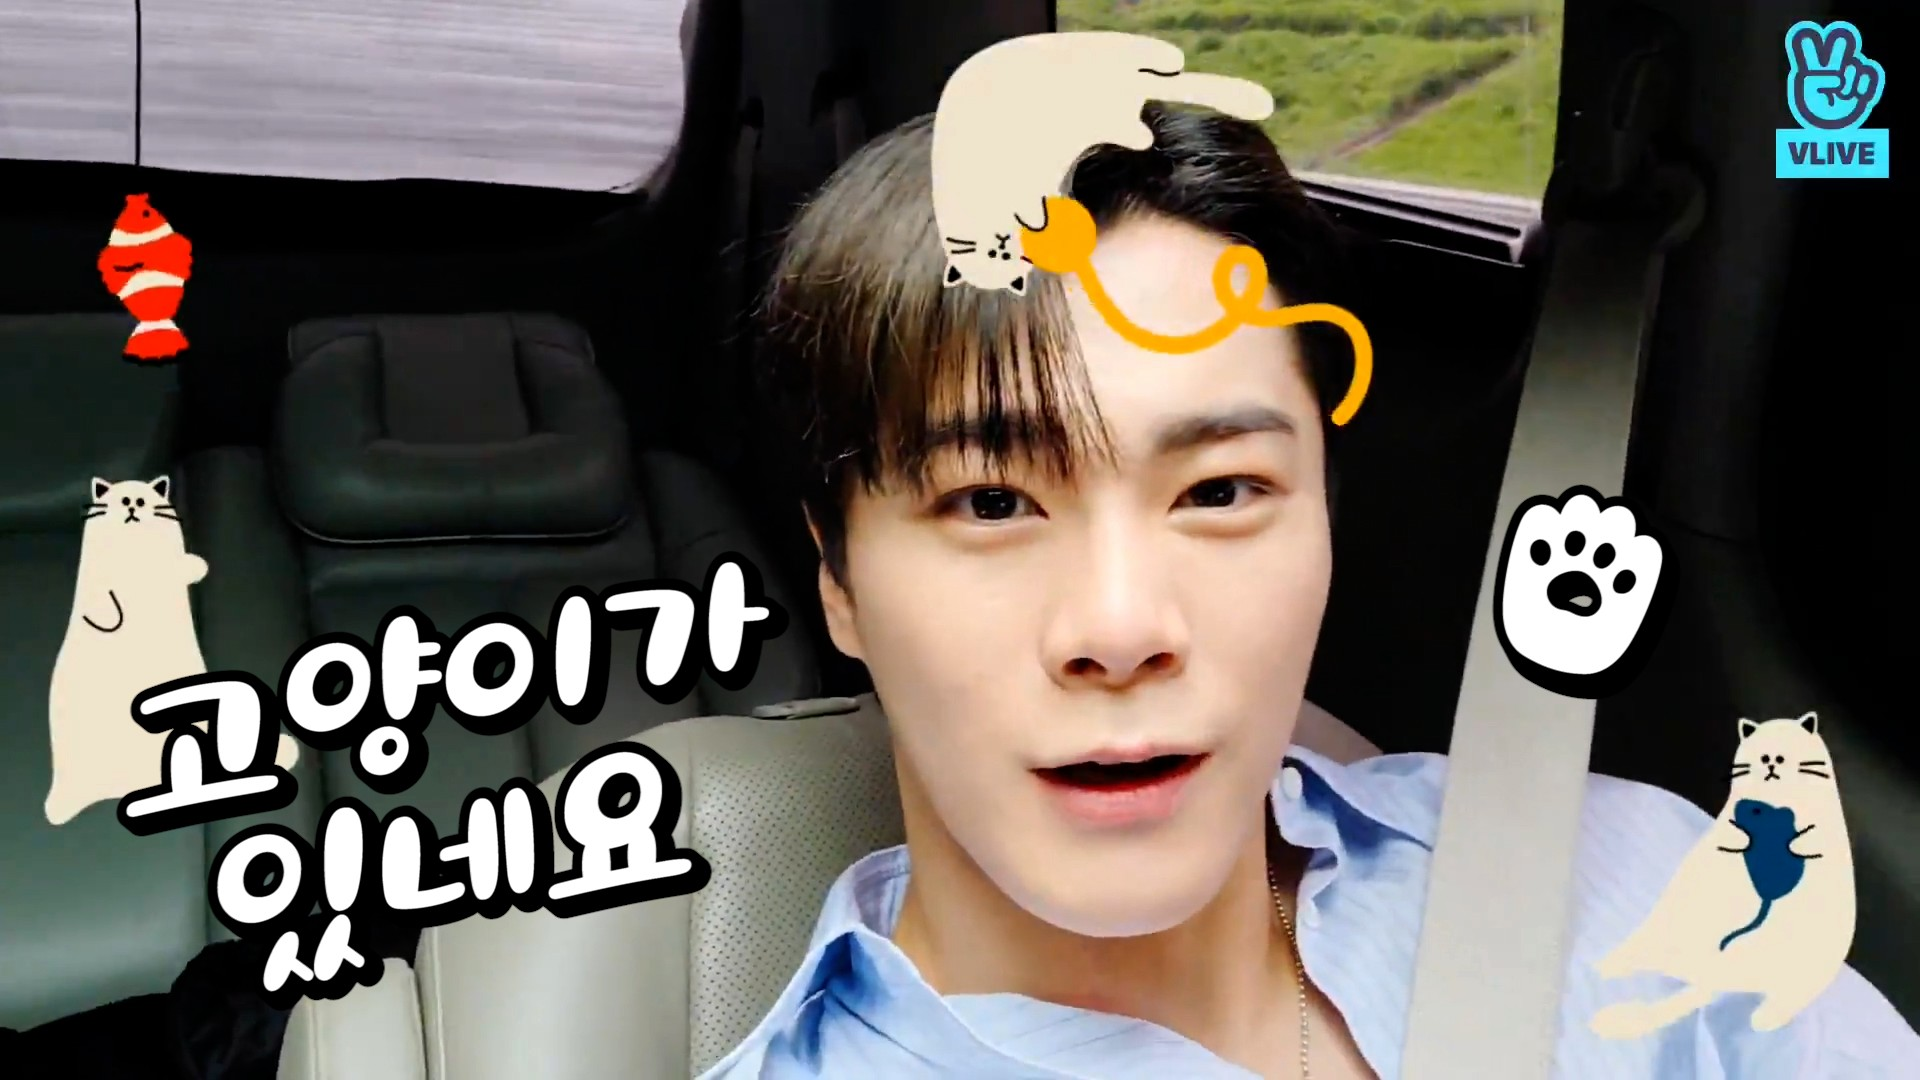 [ASTRO] 이게 뭐야 ♪ 이게 뭐야 ♬ 이건 멍냥이〰️🐶🐱 (MOONBIN talking about weather)